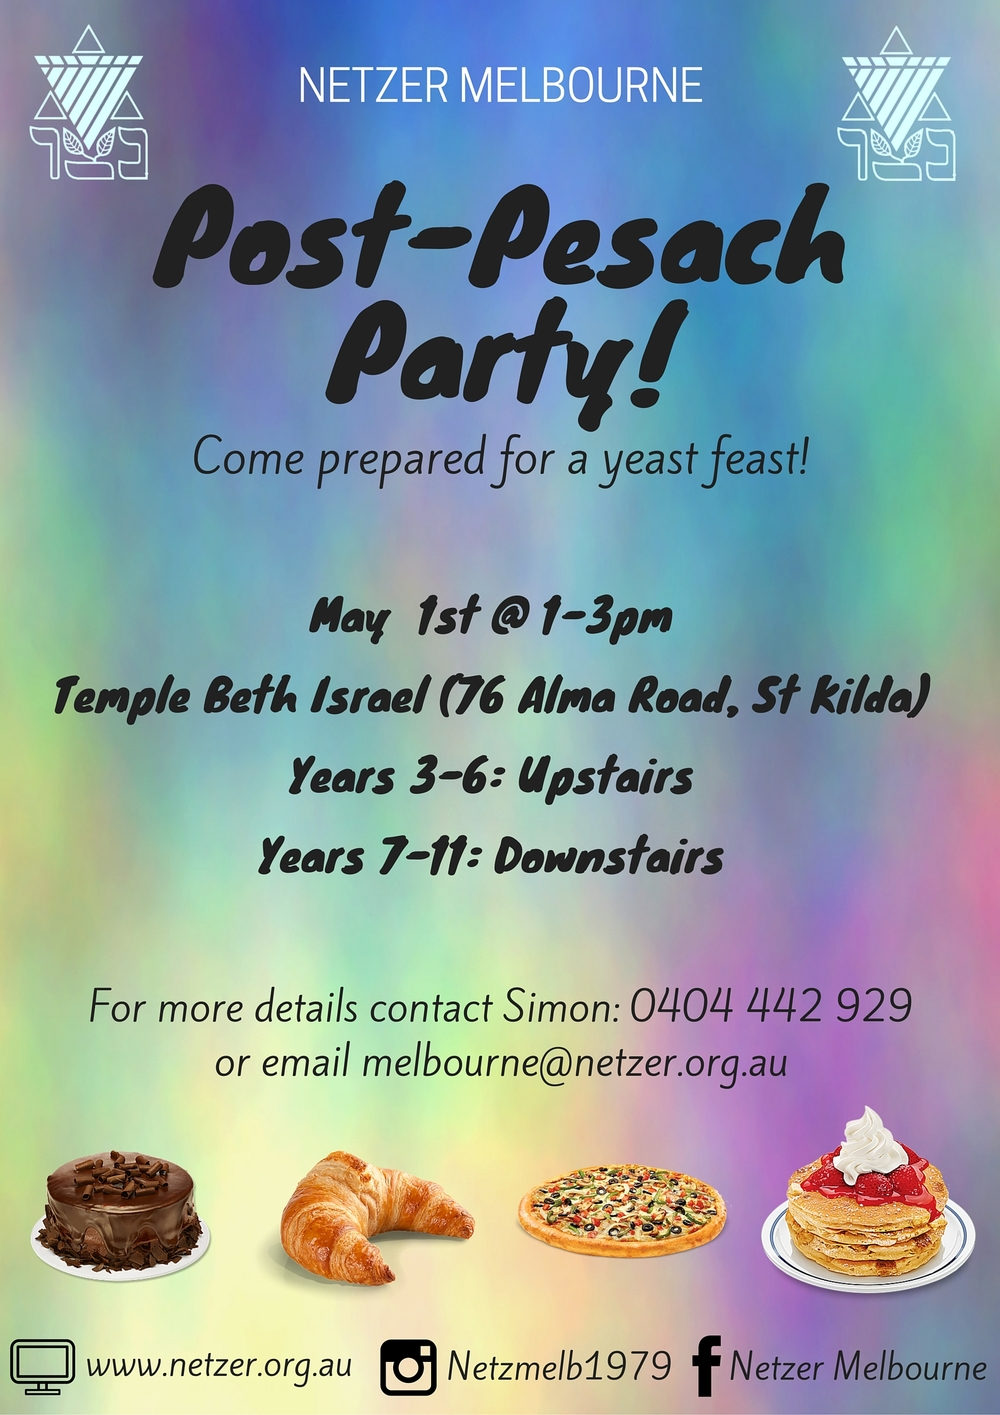 Post-Pesach Party 1/5/16